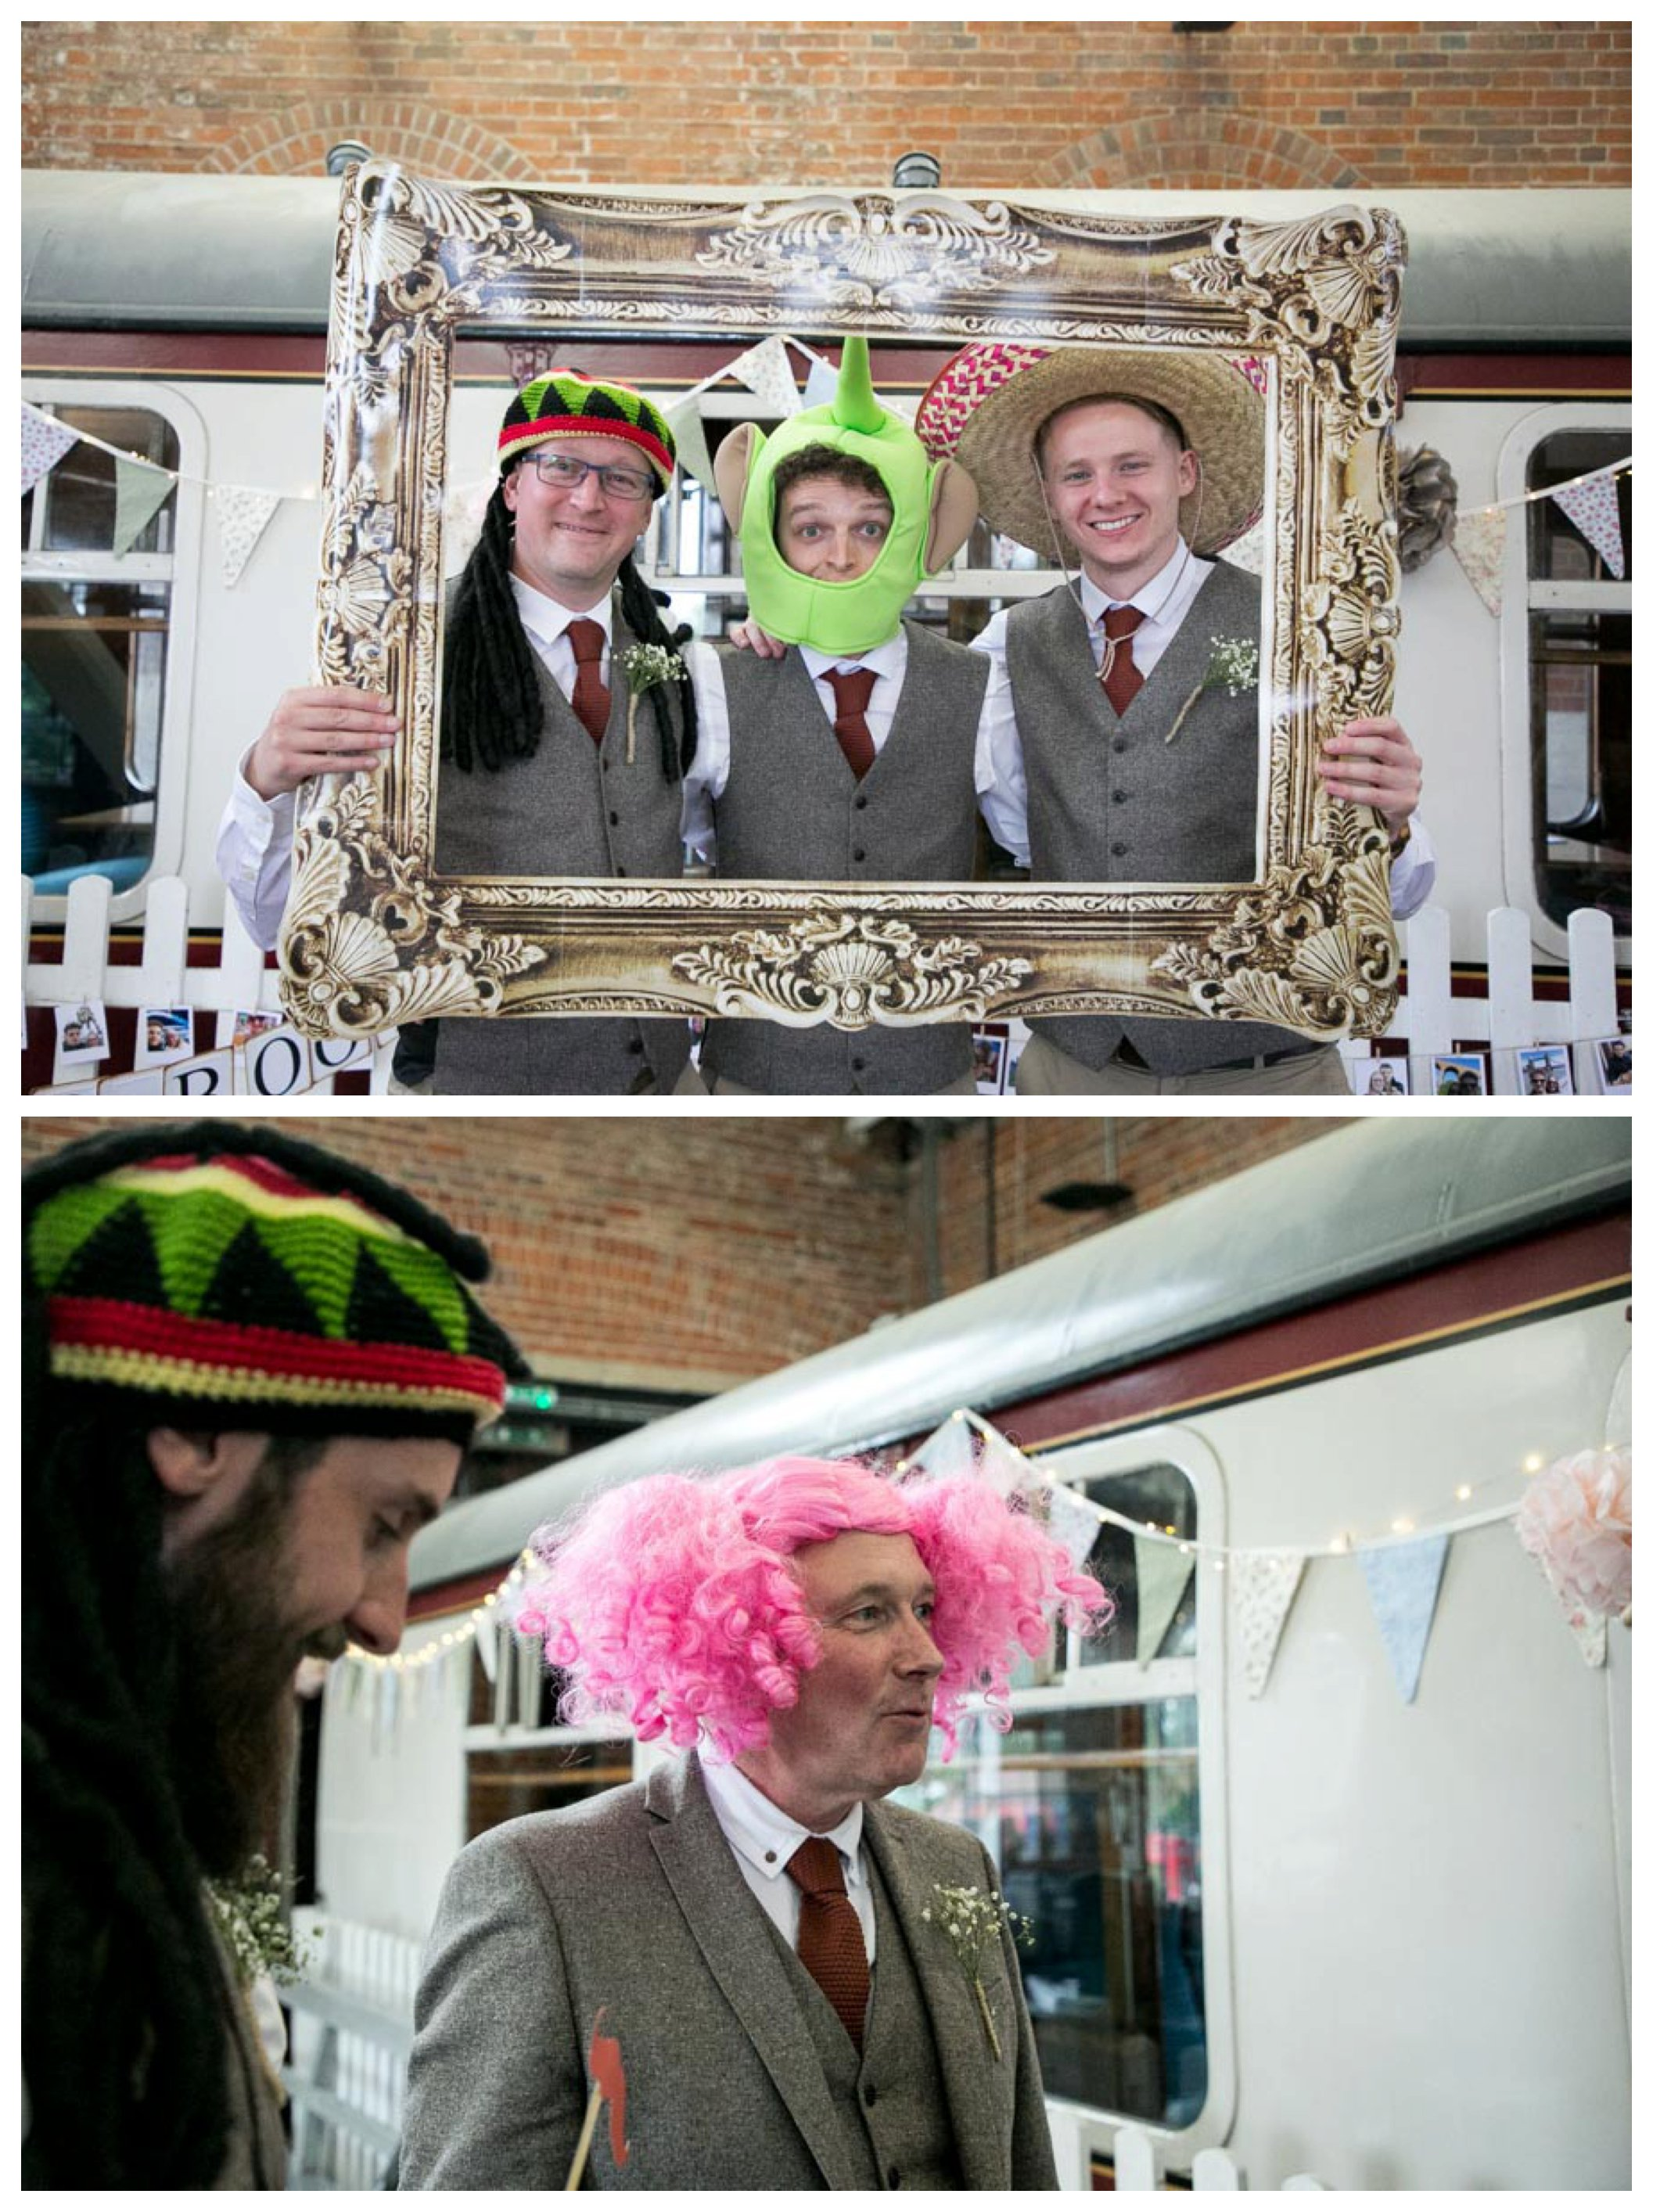 groom and friends with silly wigs at wedding reception